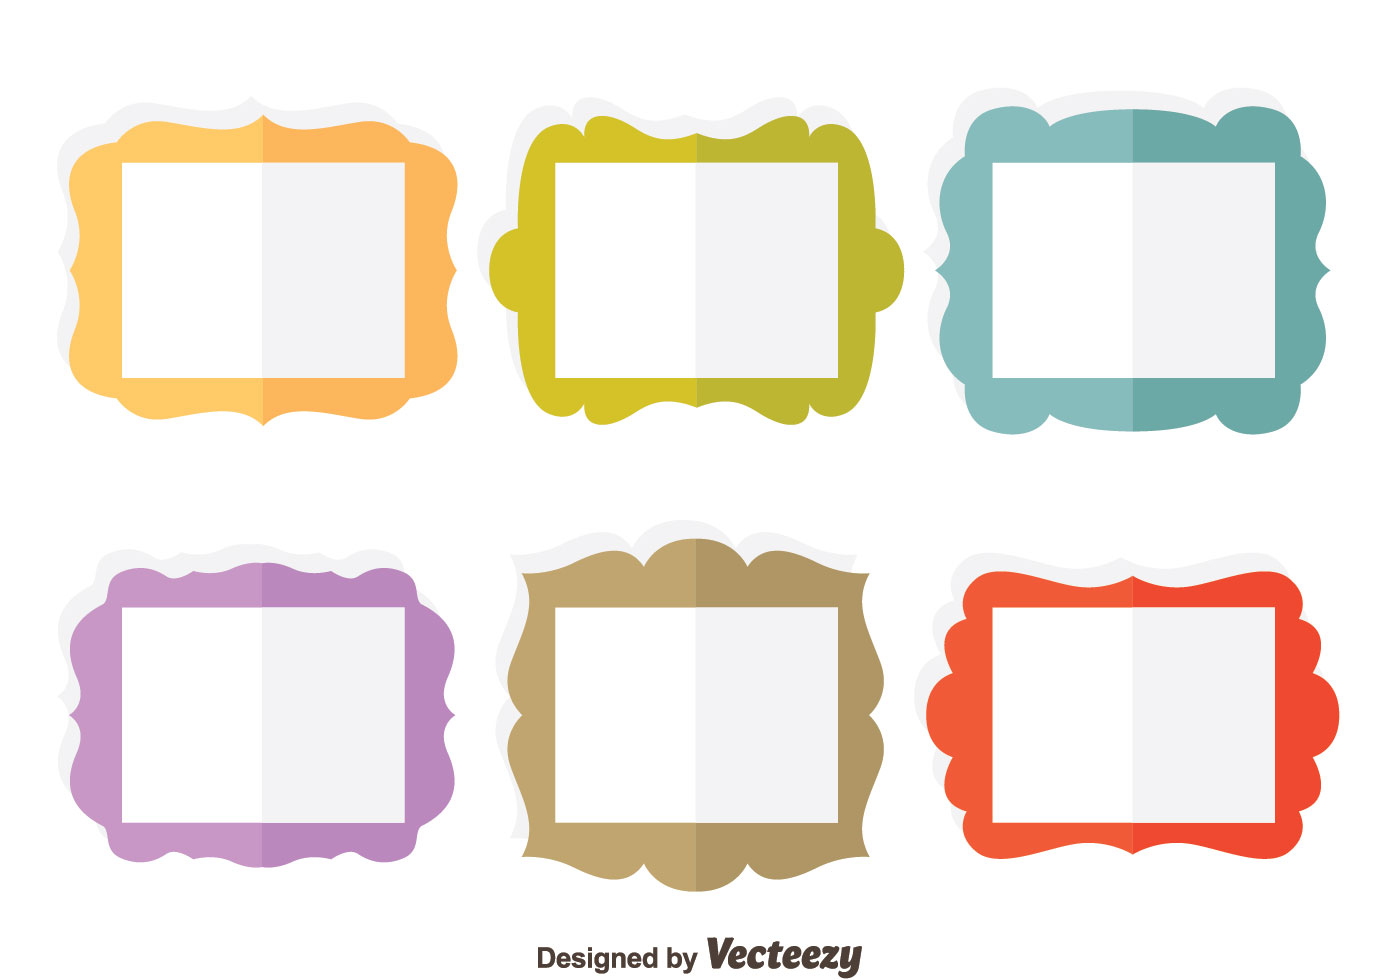 Colorful Frames Free Vector Art - (22846 Free Downloads)